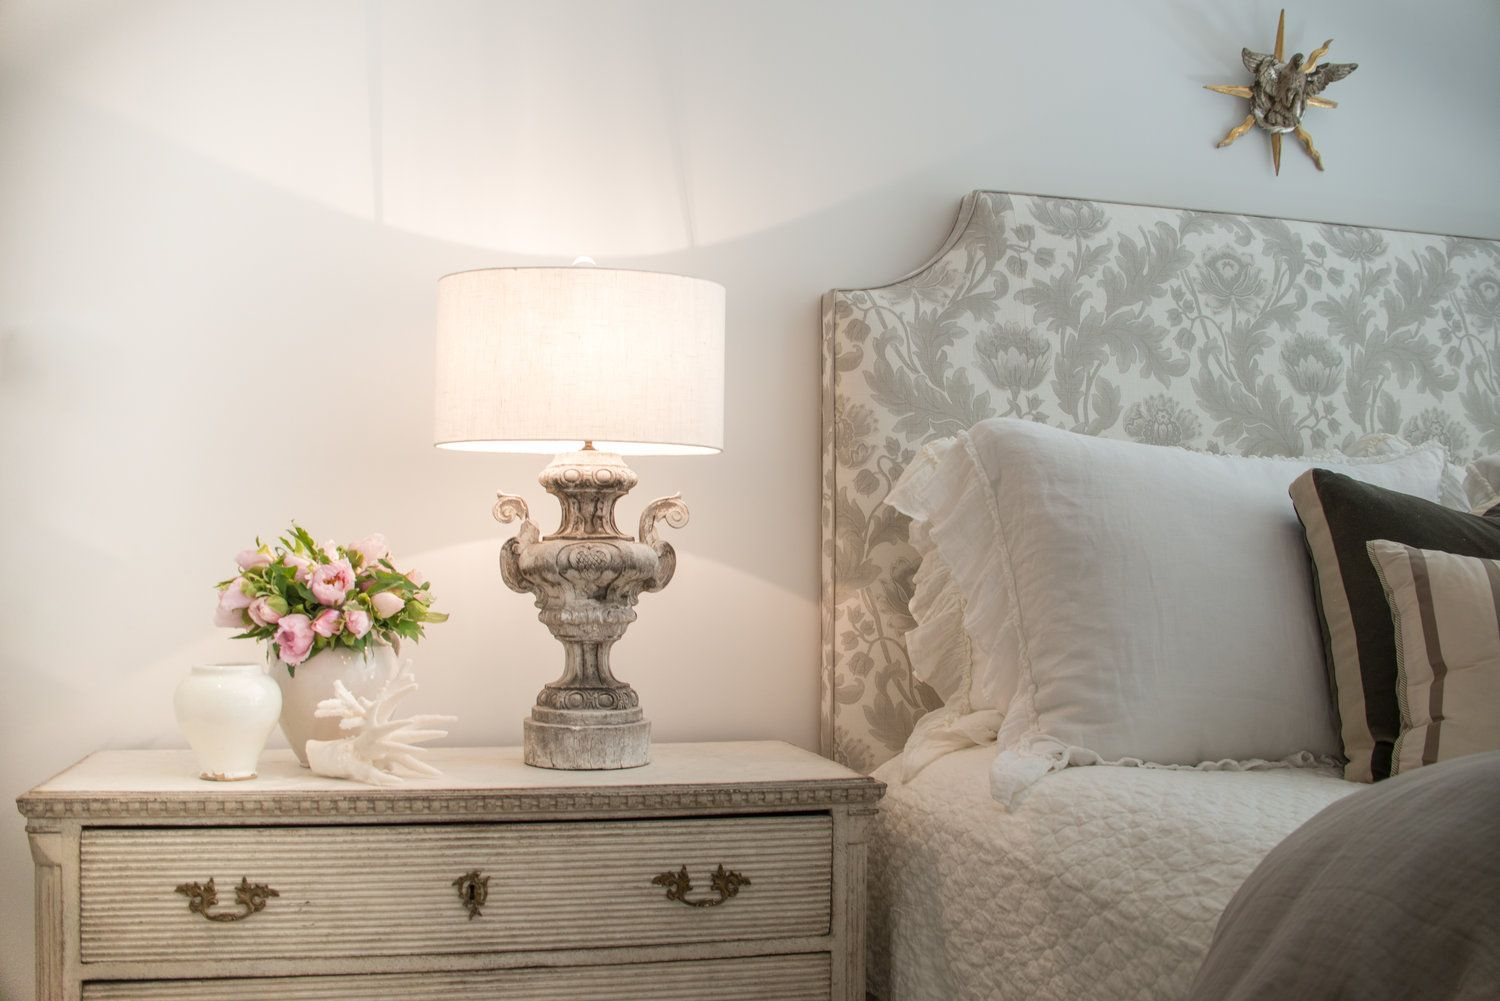 Pin by Cindy Jensen on Bedrooms Dresser as nightstand